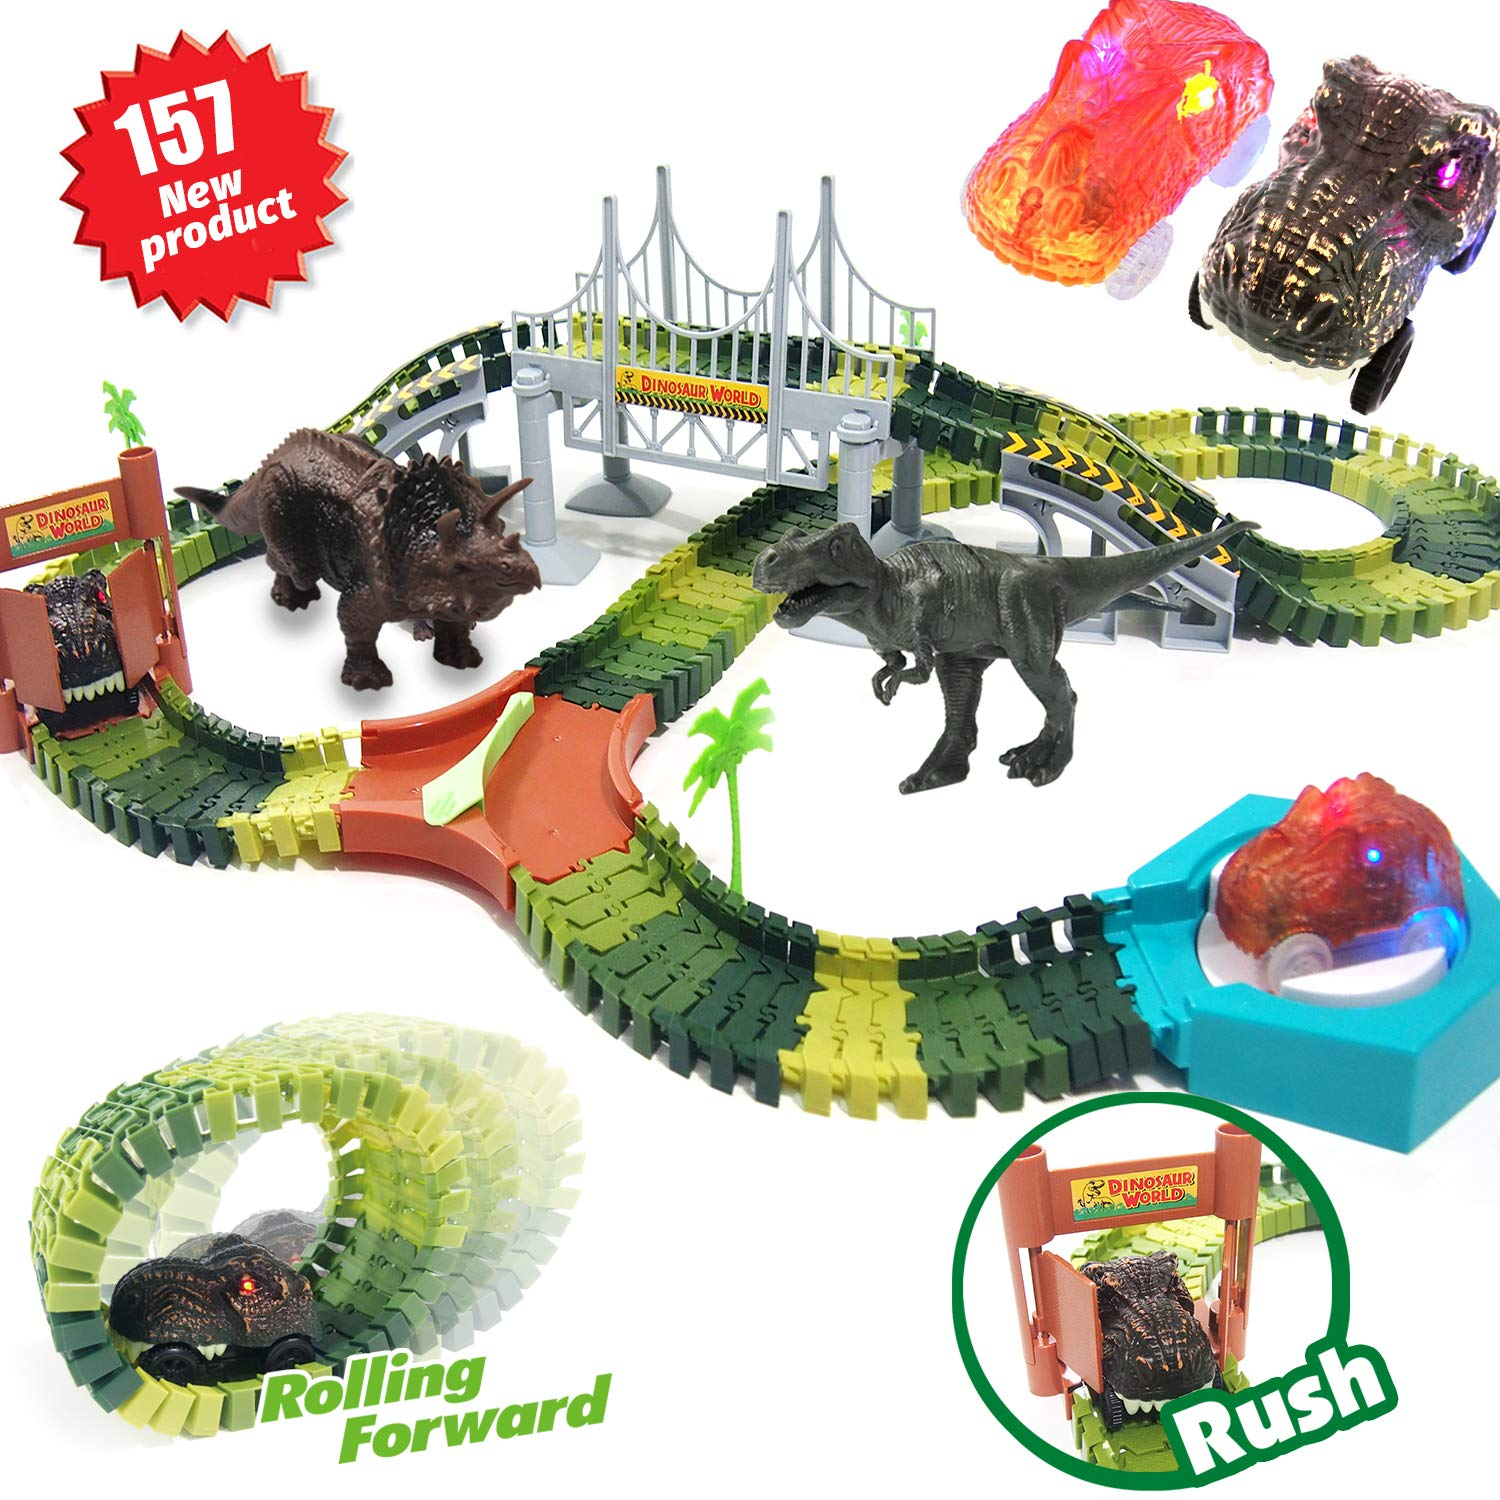 HOMOFY 157PCS Dinosaur Toys Race Car Flexible Track Sets, 1 Turntable, 2 Slopes,3 Dinosaurs, 2 Dinosaurs Car, Playset Toys for 3 4 5 6 7 Years Old Girls Boys Kids Toddlers Gifts